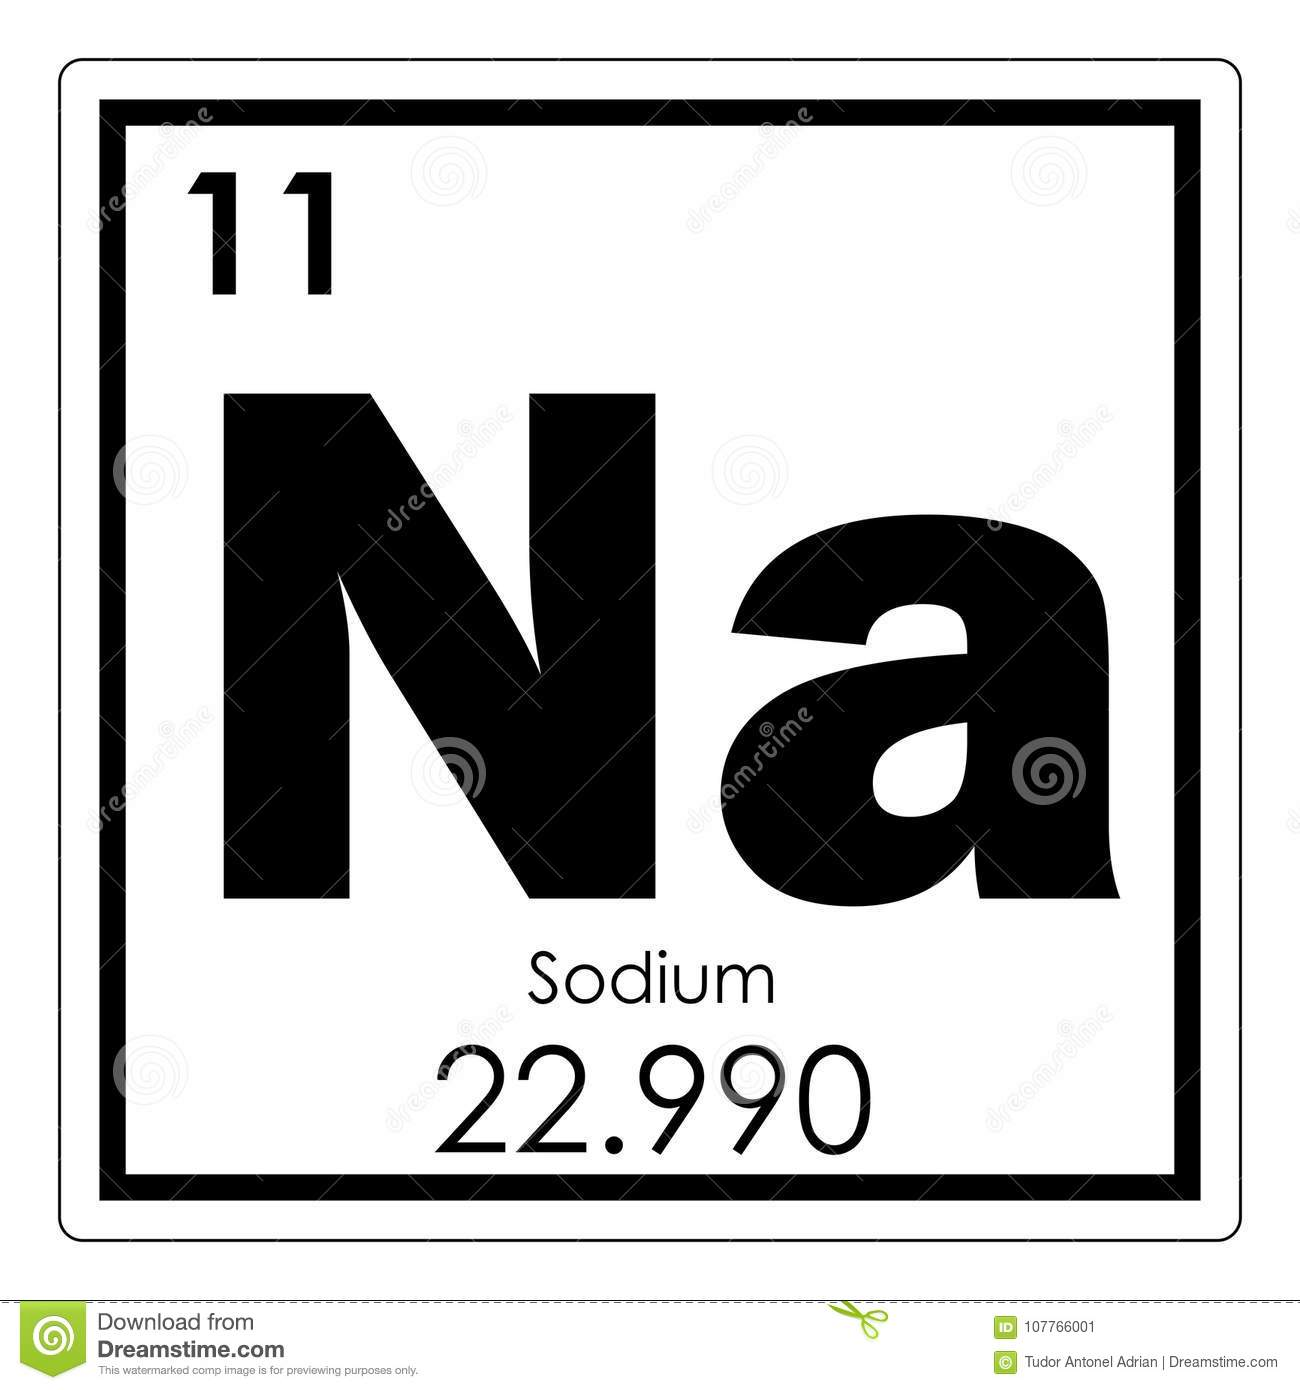 Sodium Chemical Element Stock Illustration Illustration Of Formula